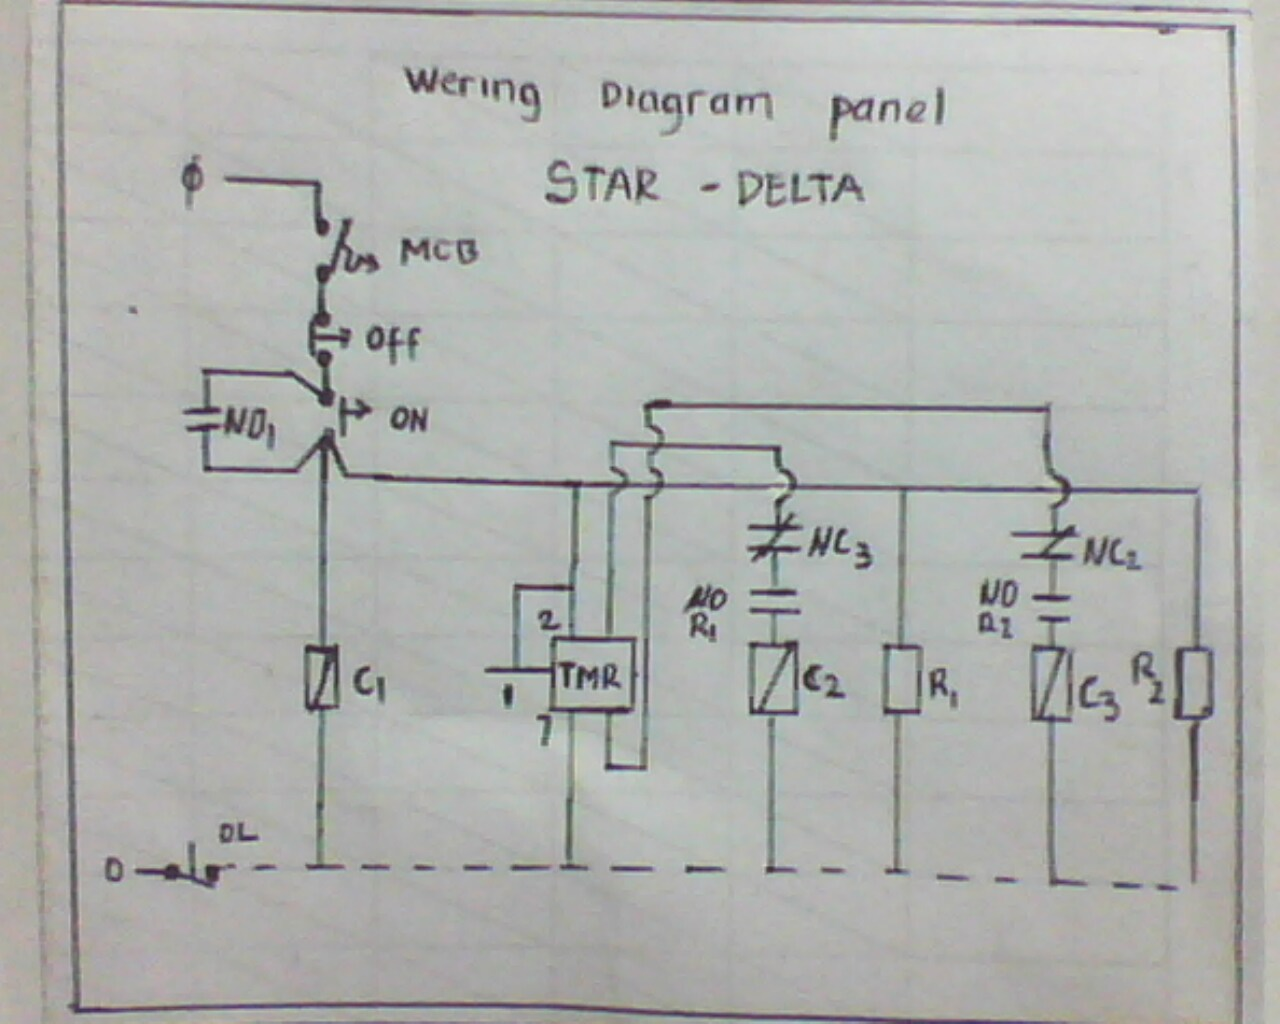 Schematic Of Star Delta Connections Diagrams on star sv32j basic wiring schematics, motor starter wiring diagram, www.ct coil circuit diagram, star delta contactor connections, delta wiring diagram, 3 phase starter diagram, soft starter diagram, reversing contactor wiring diagram, star delta switch, autotransformer diagram, star delta control panel, star delta contactor diagrams, electrical contactor wiring diagram, star delta motor, soft start wiring diagram, star electric motor diagram, transformer oil diagram, contactor coil wiring diagram, step down transformer diagram,